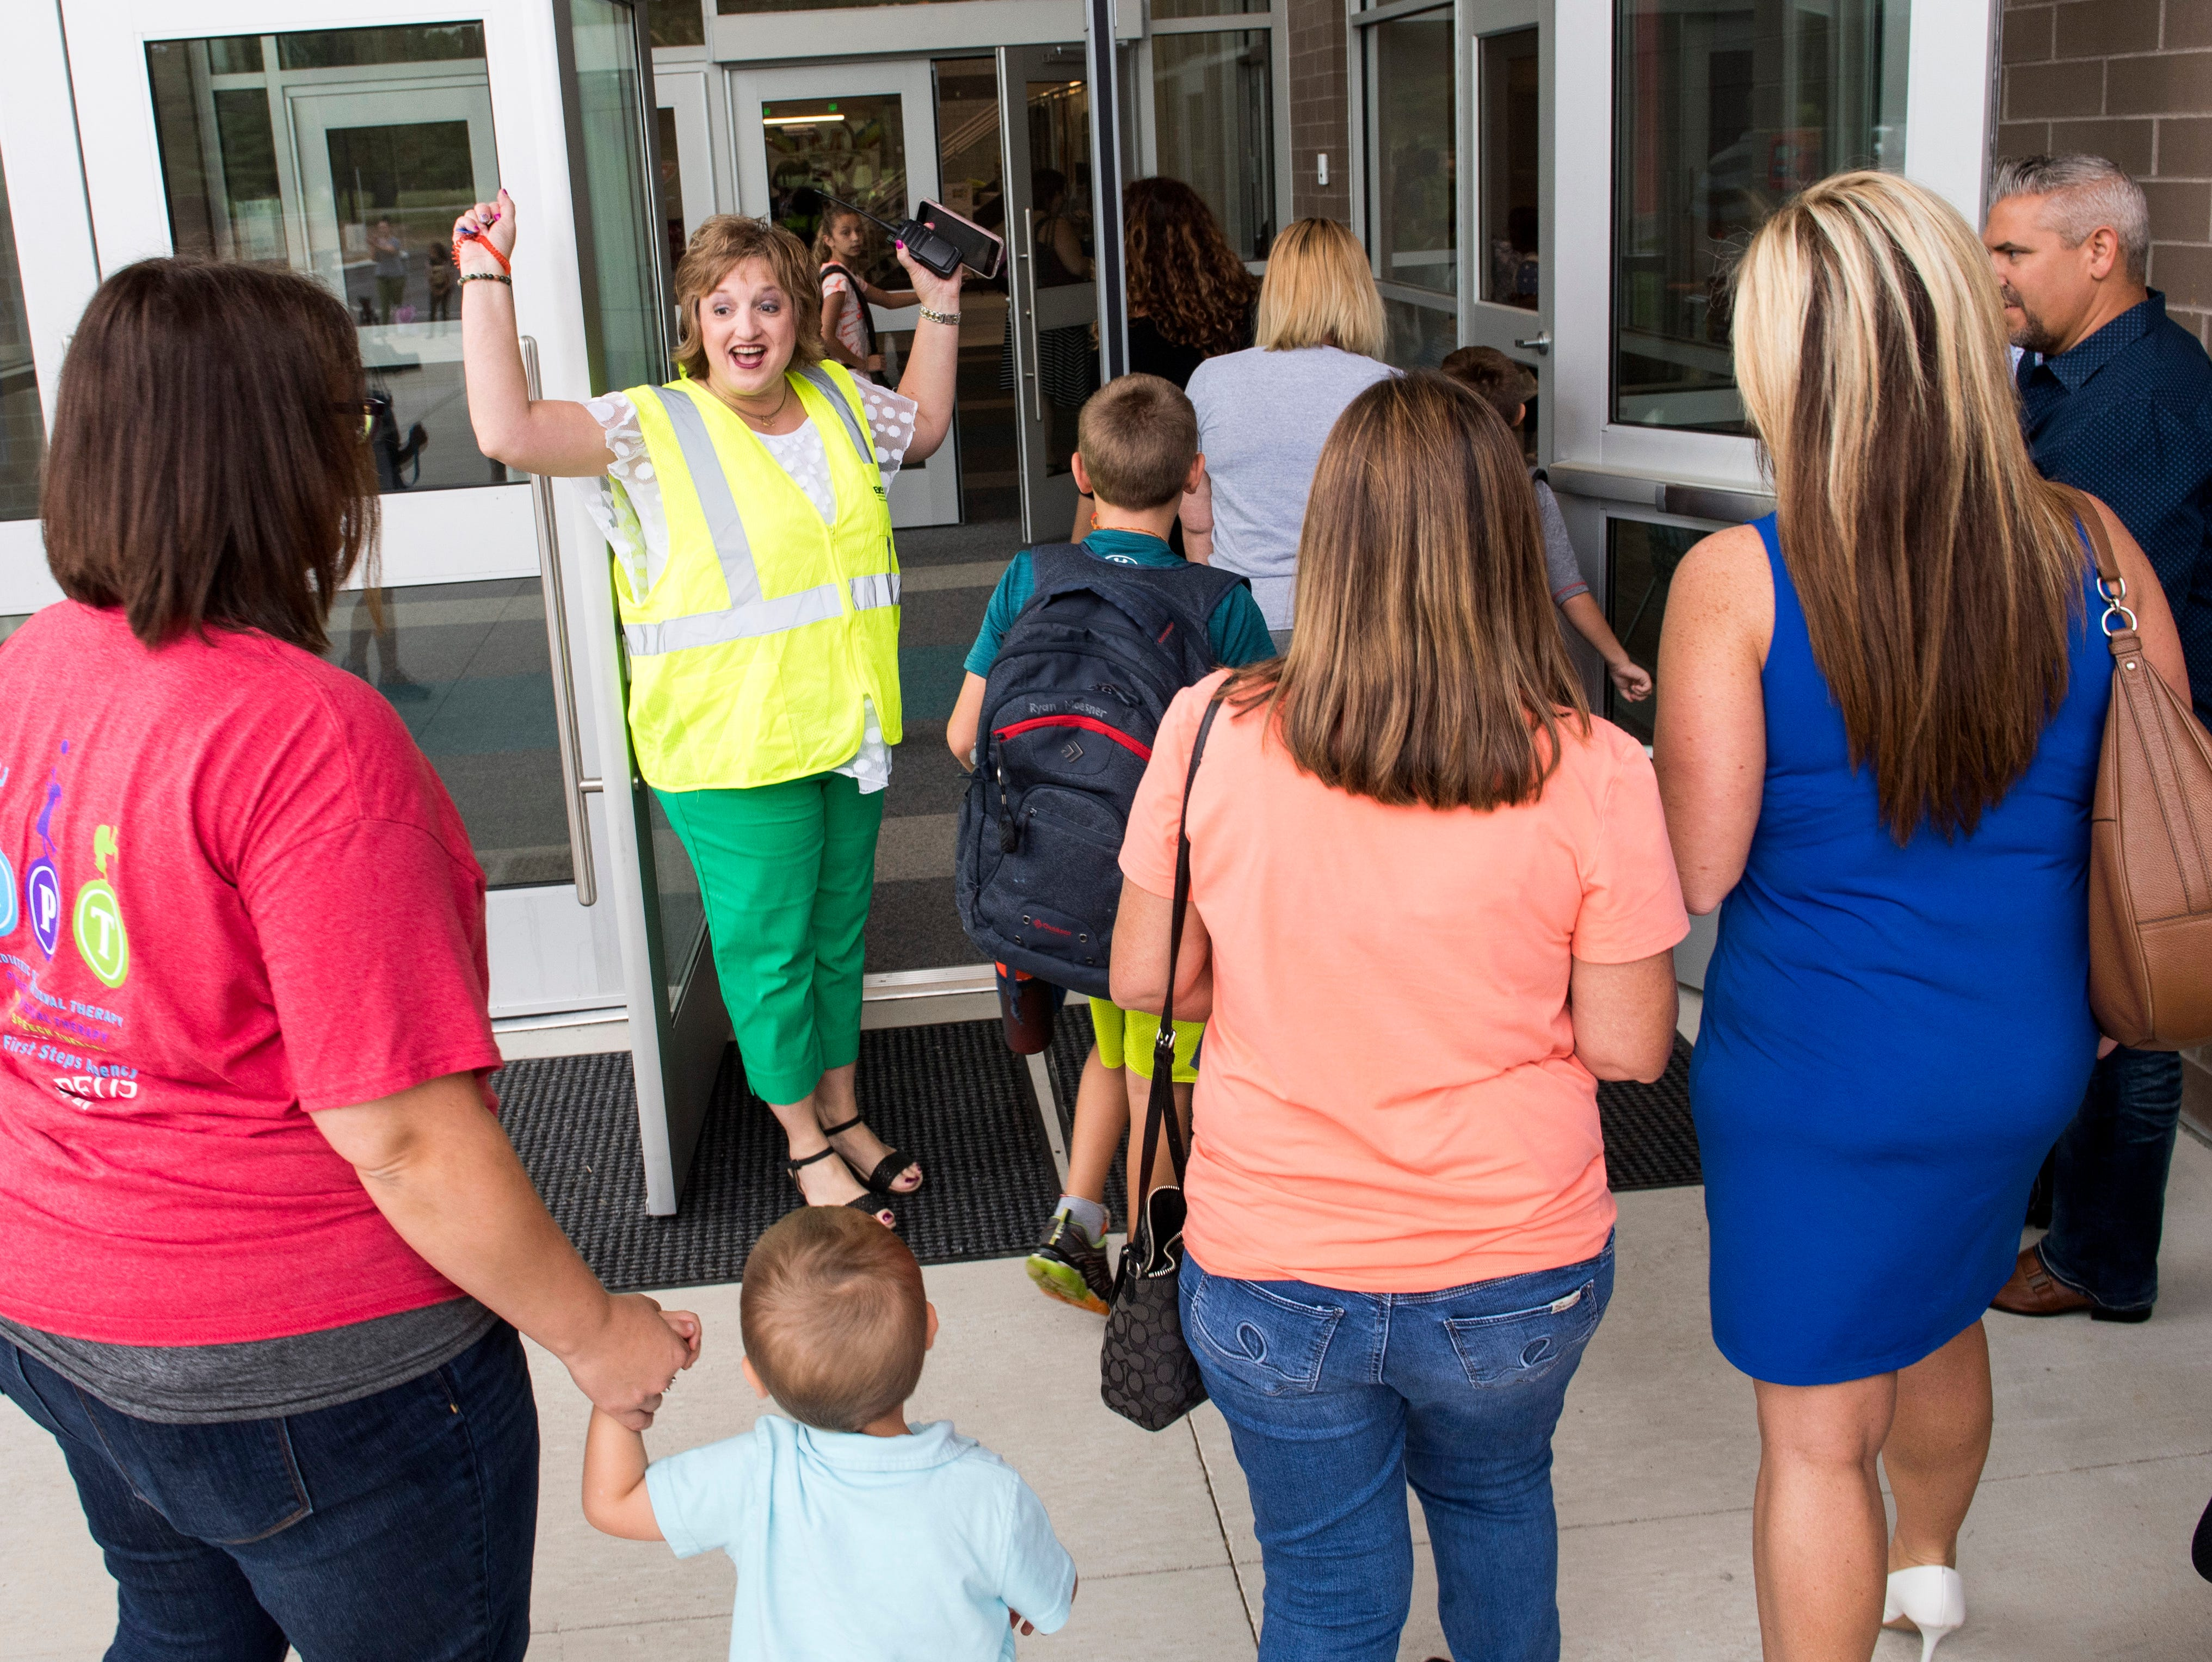 McCutchanville Elementary school principal Lisa Shanks, middle, opens the doors for the first time with a cheer while students arrive for the first day of school Wednesday, August 8, 2018.